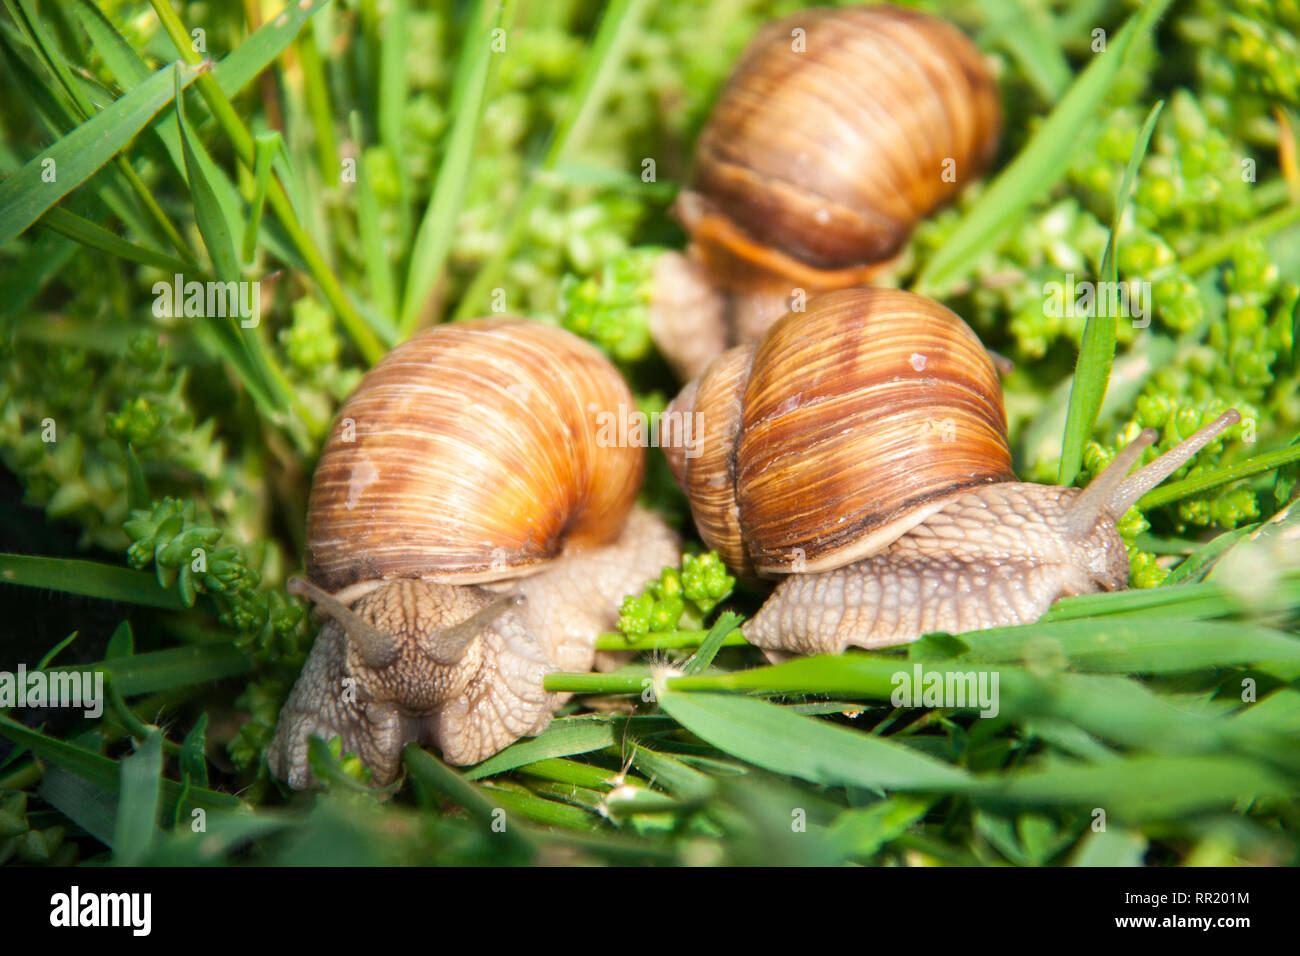 Slug Stock Photos & Slug Stock Images - Page 9 - Alamy